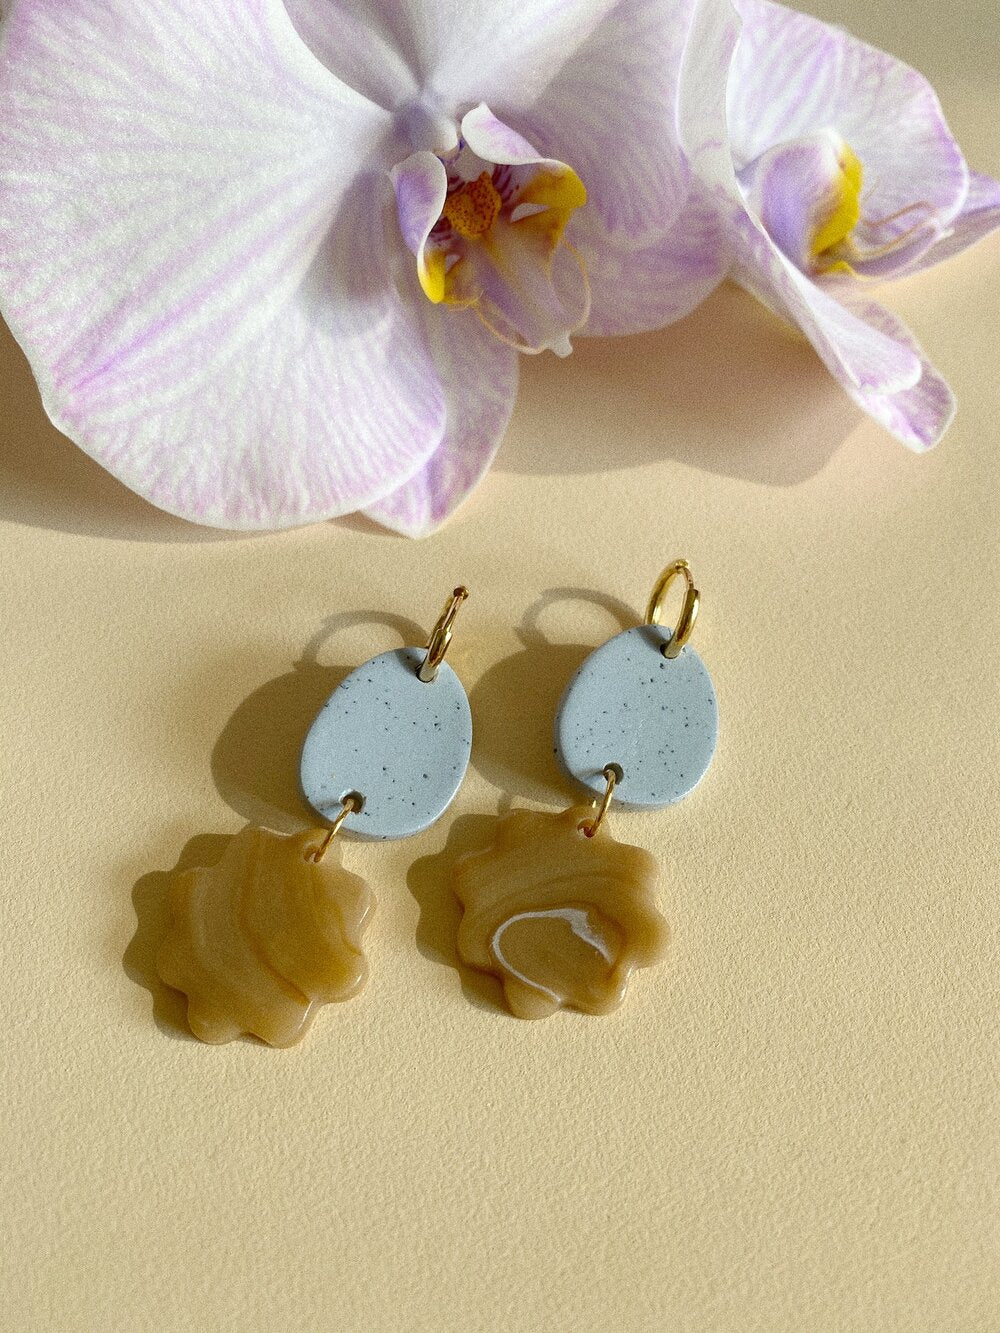 Aacute Belong Earrings - Egg Blue and Coffee Swirl